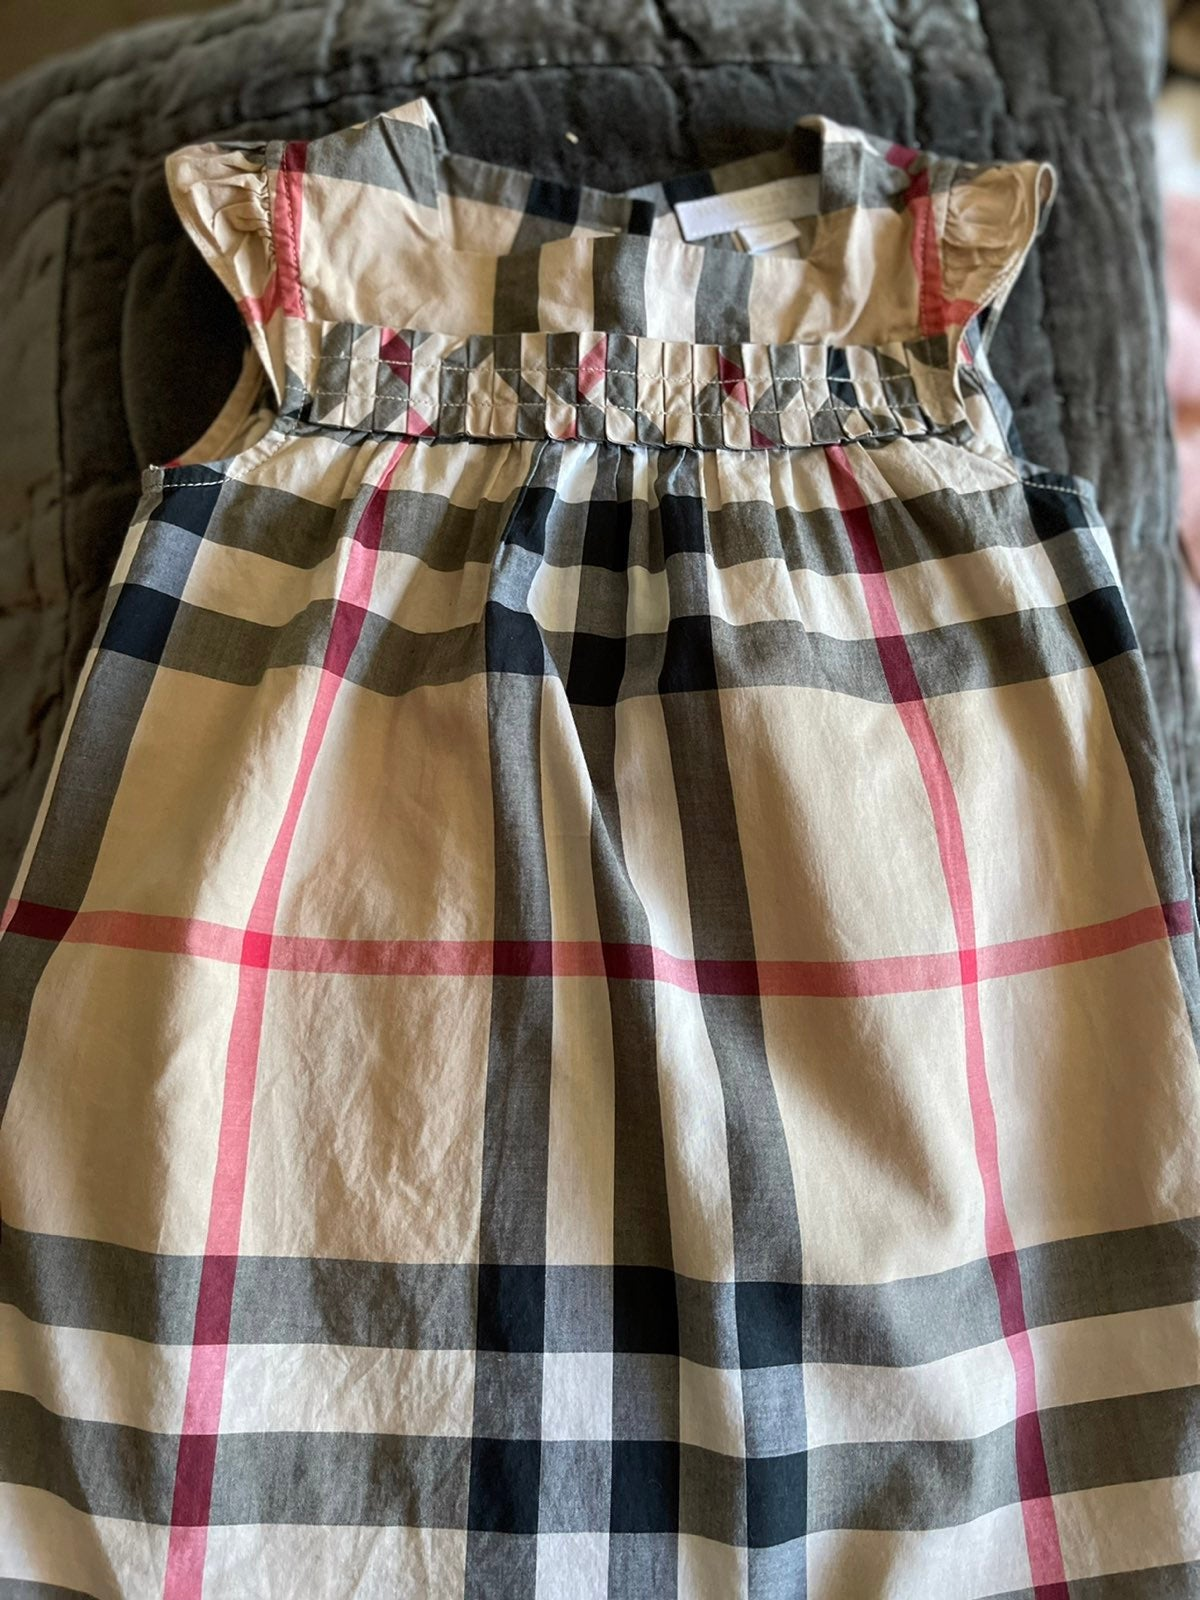 Burberry dress and matching leggings!